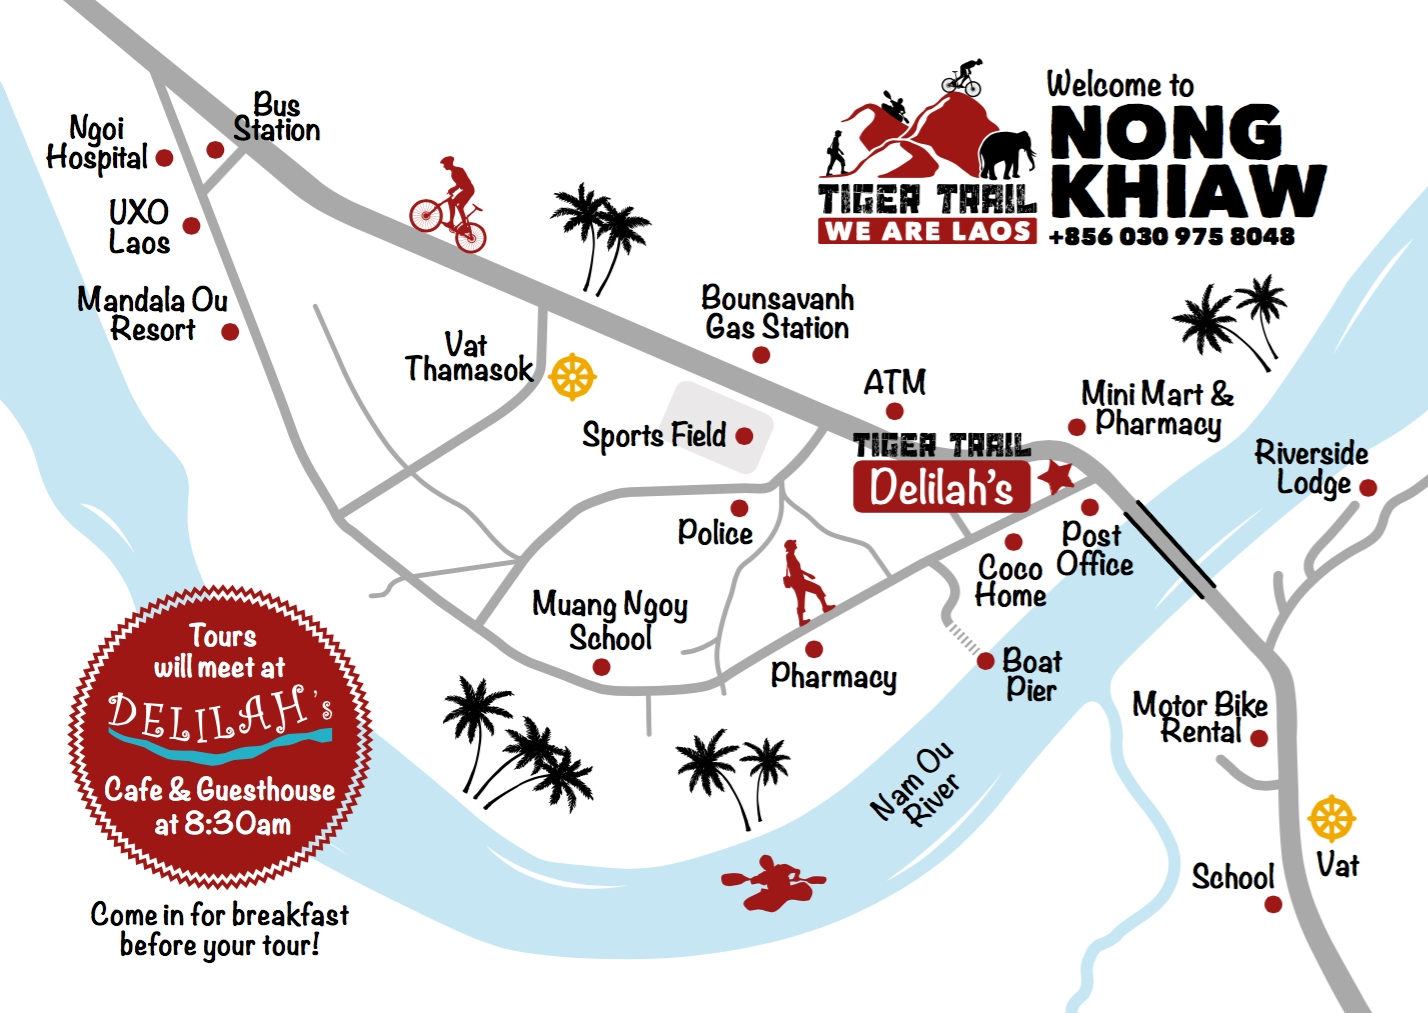 Map of Nong Khiaw